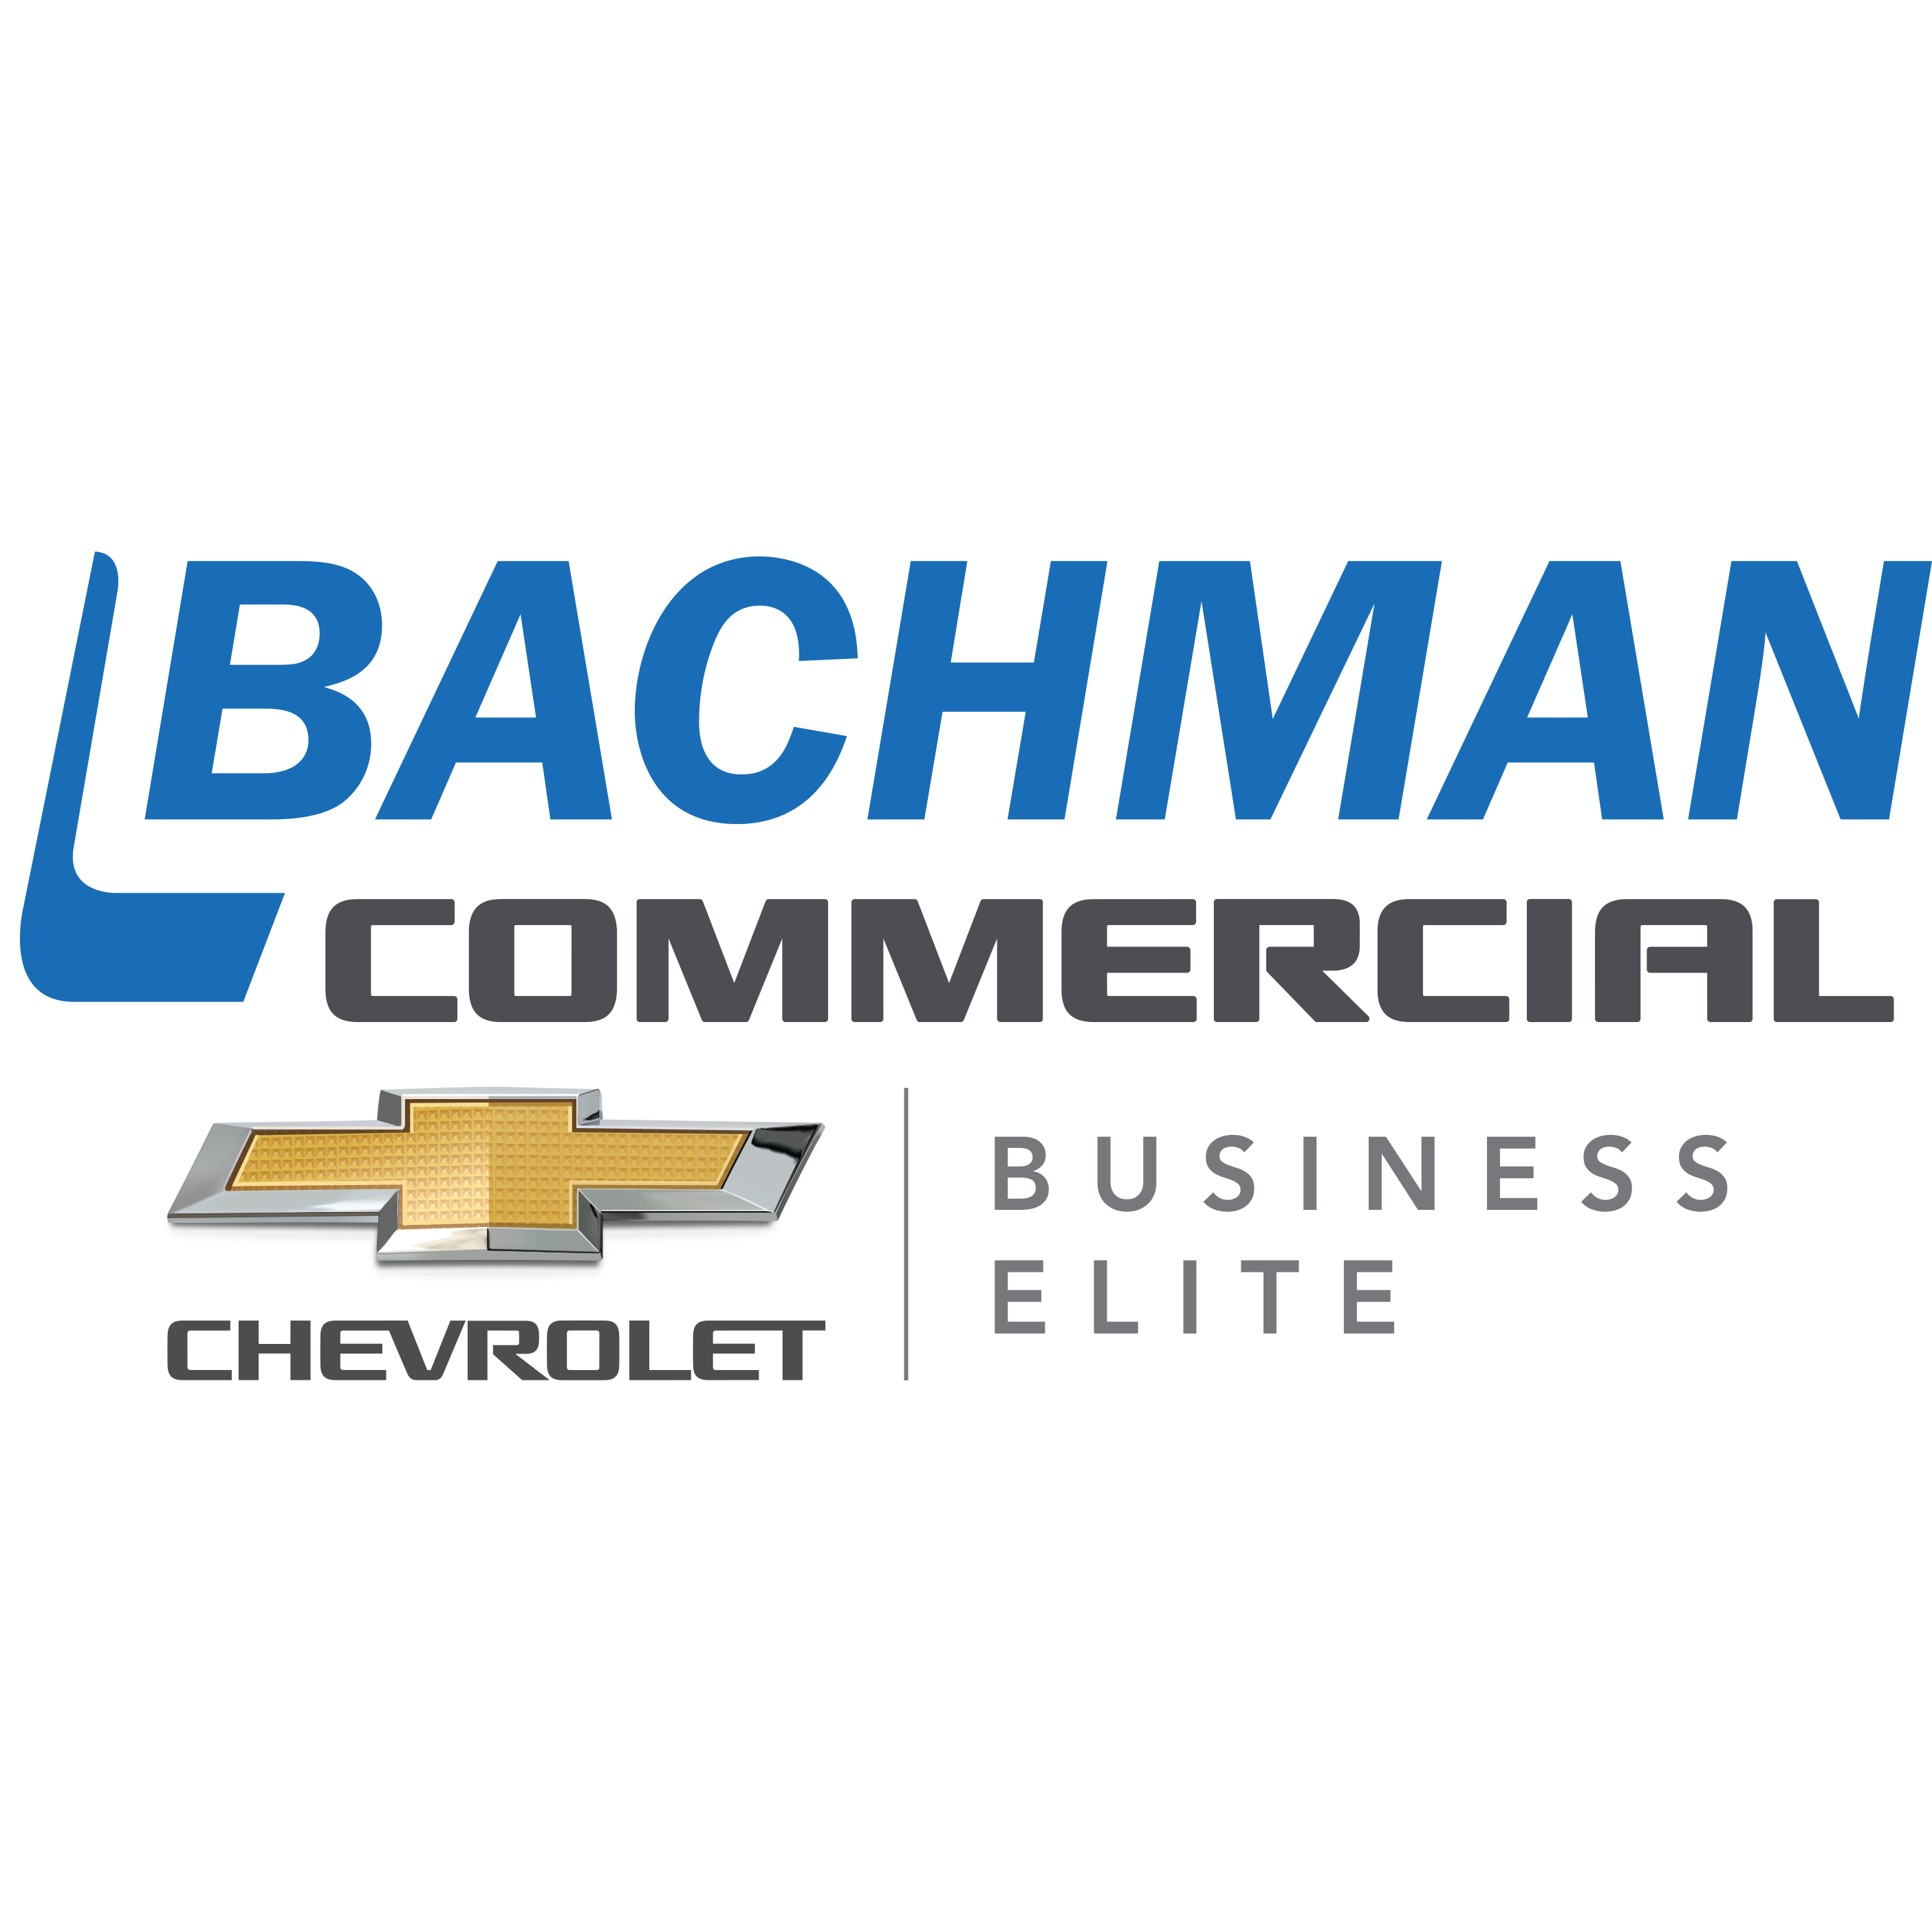 Bachman Commercial